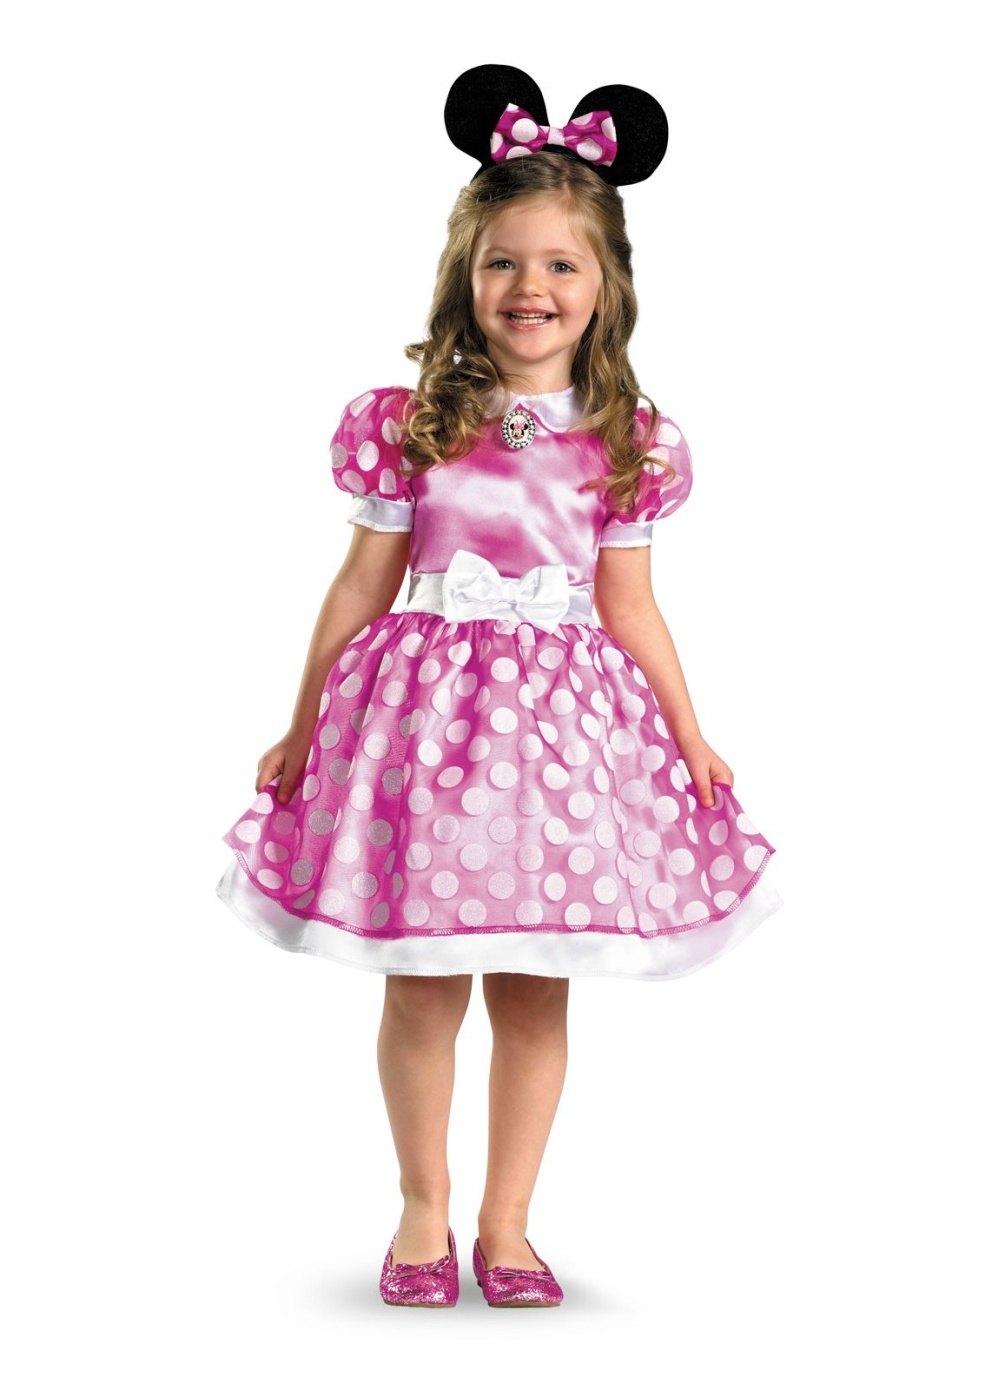 Toddler Minnie Mouse Girls' Clothing at Macy's come in a variety of styles and sizes. Shop Toddler Minnie Mouse Girls' Clothing at Macy's and find the latest styles for you little one today.